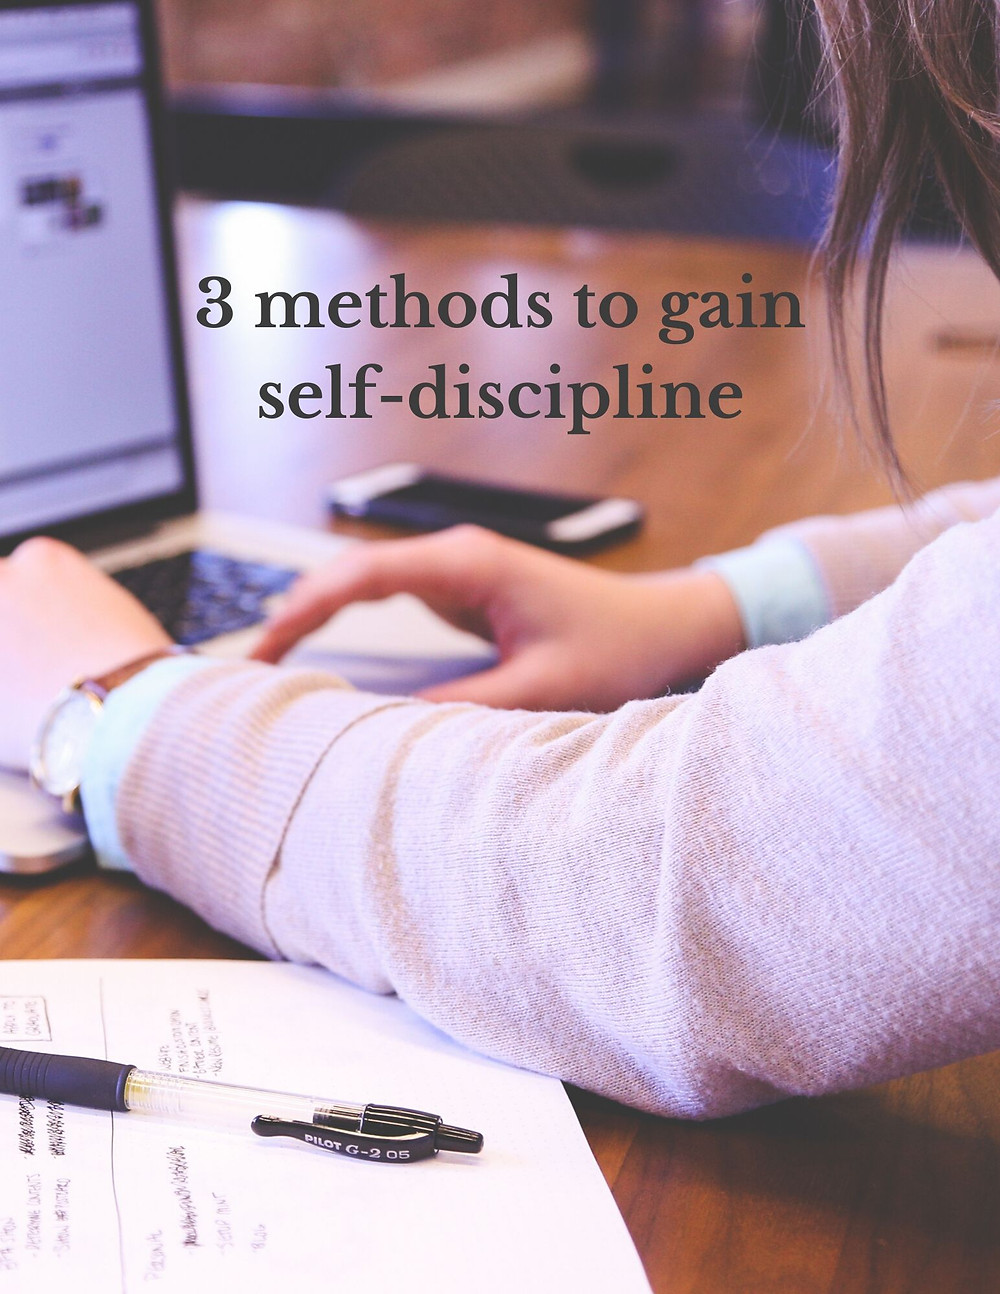 3 methods to gain self-discipline